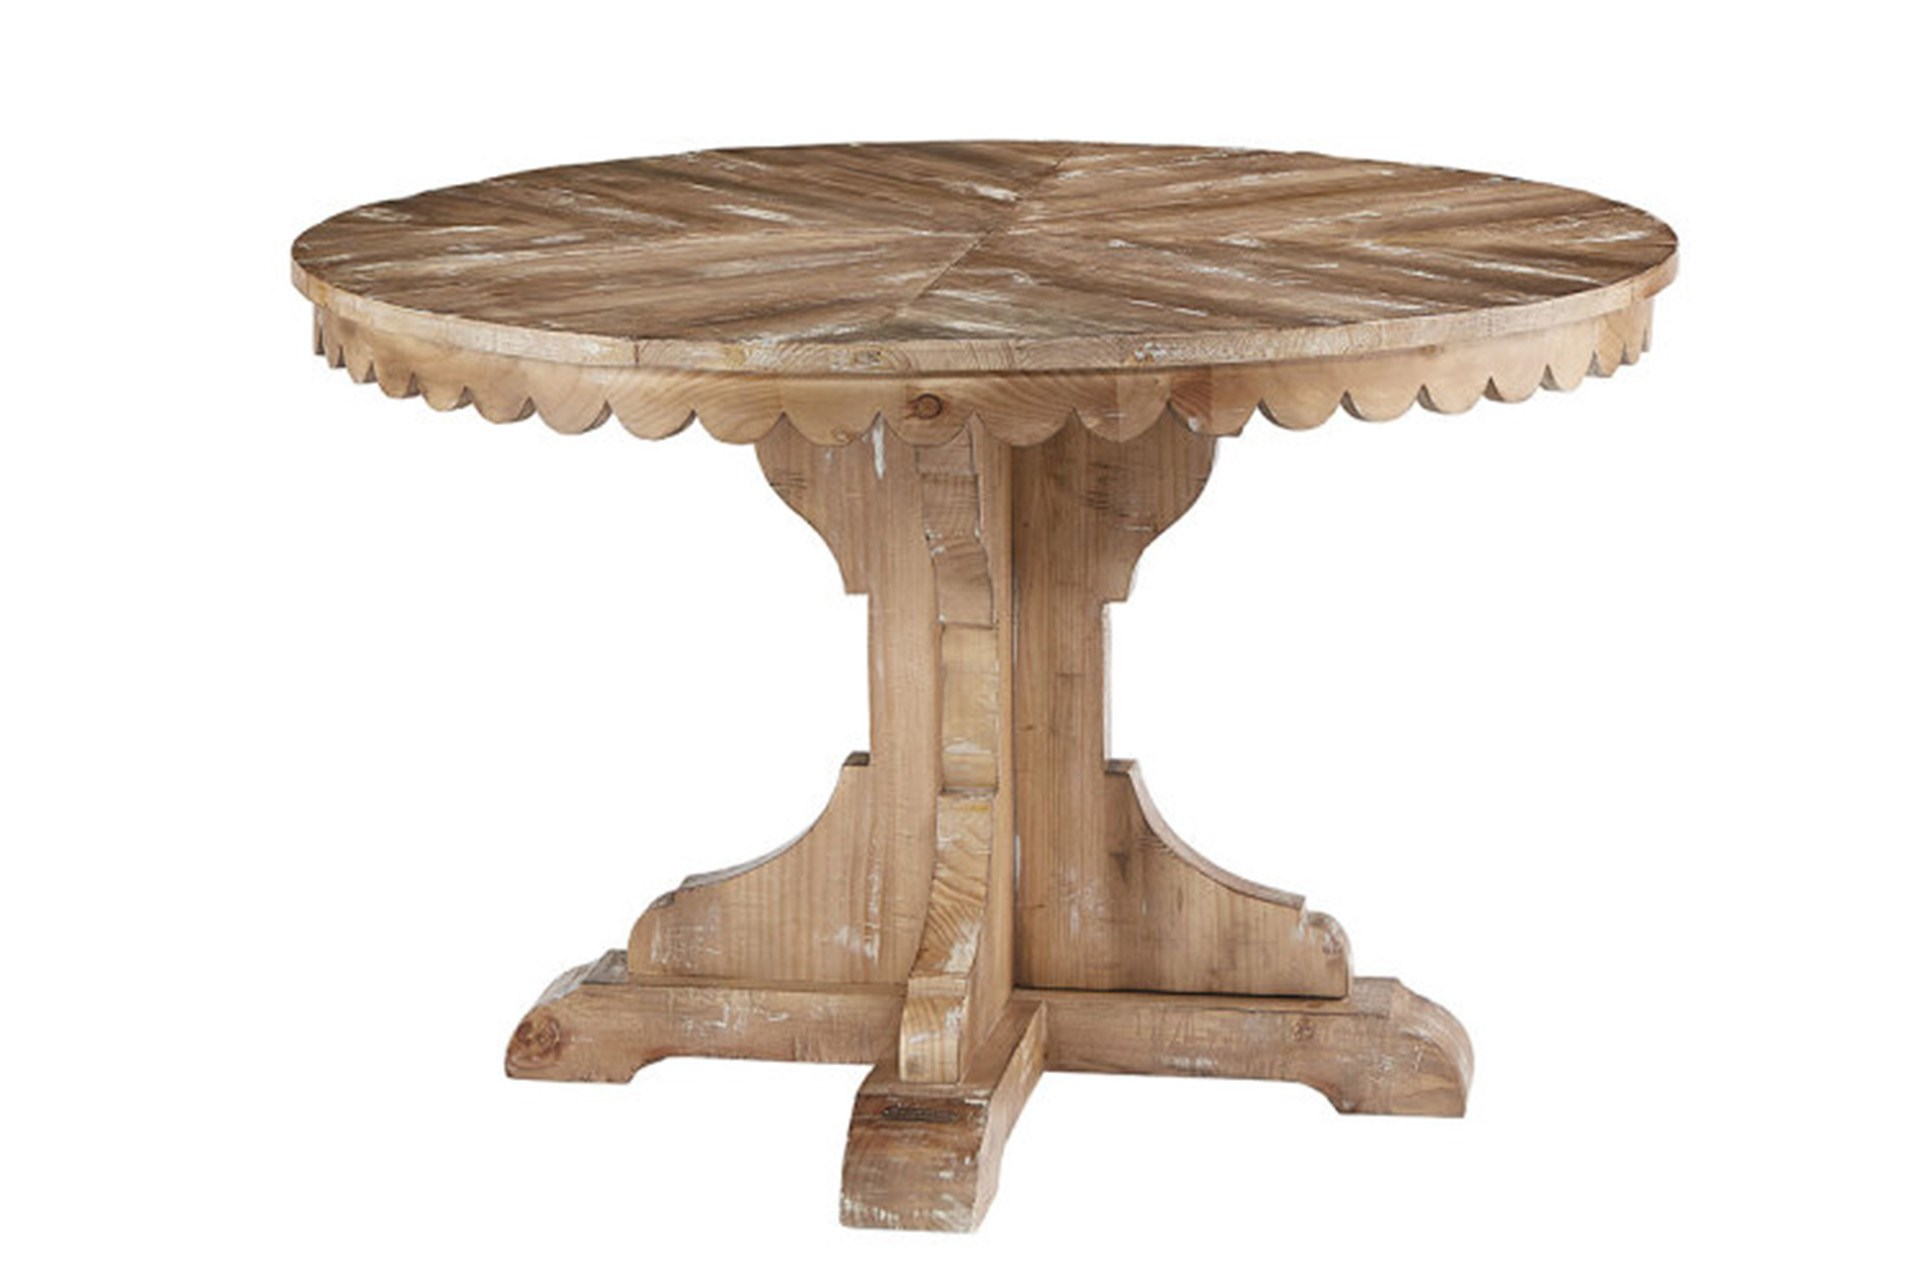 Magnolia Home Top Tier Round Dining Table By Joanna Gaines ... for Round Dining Table Top View  585ifm